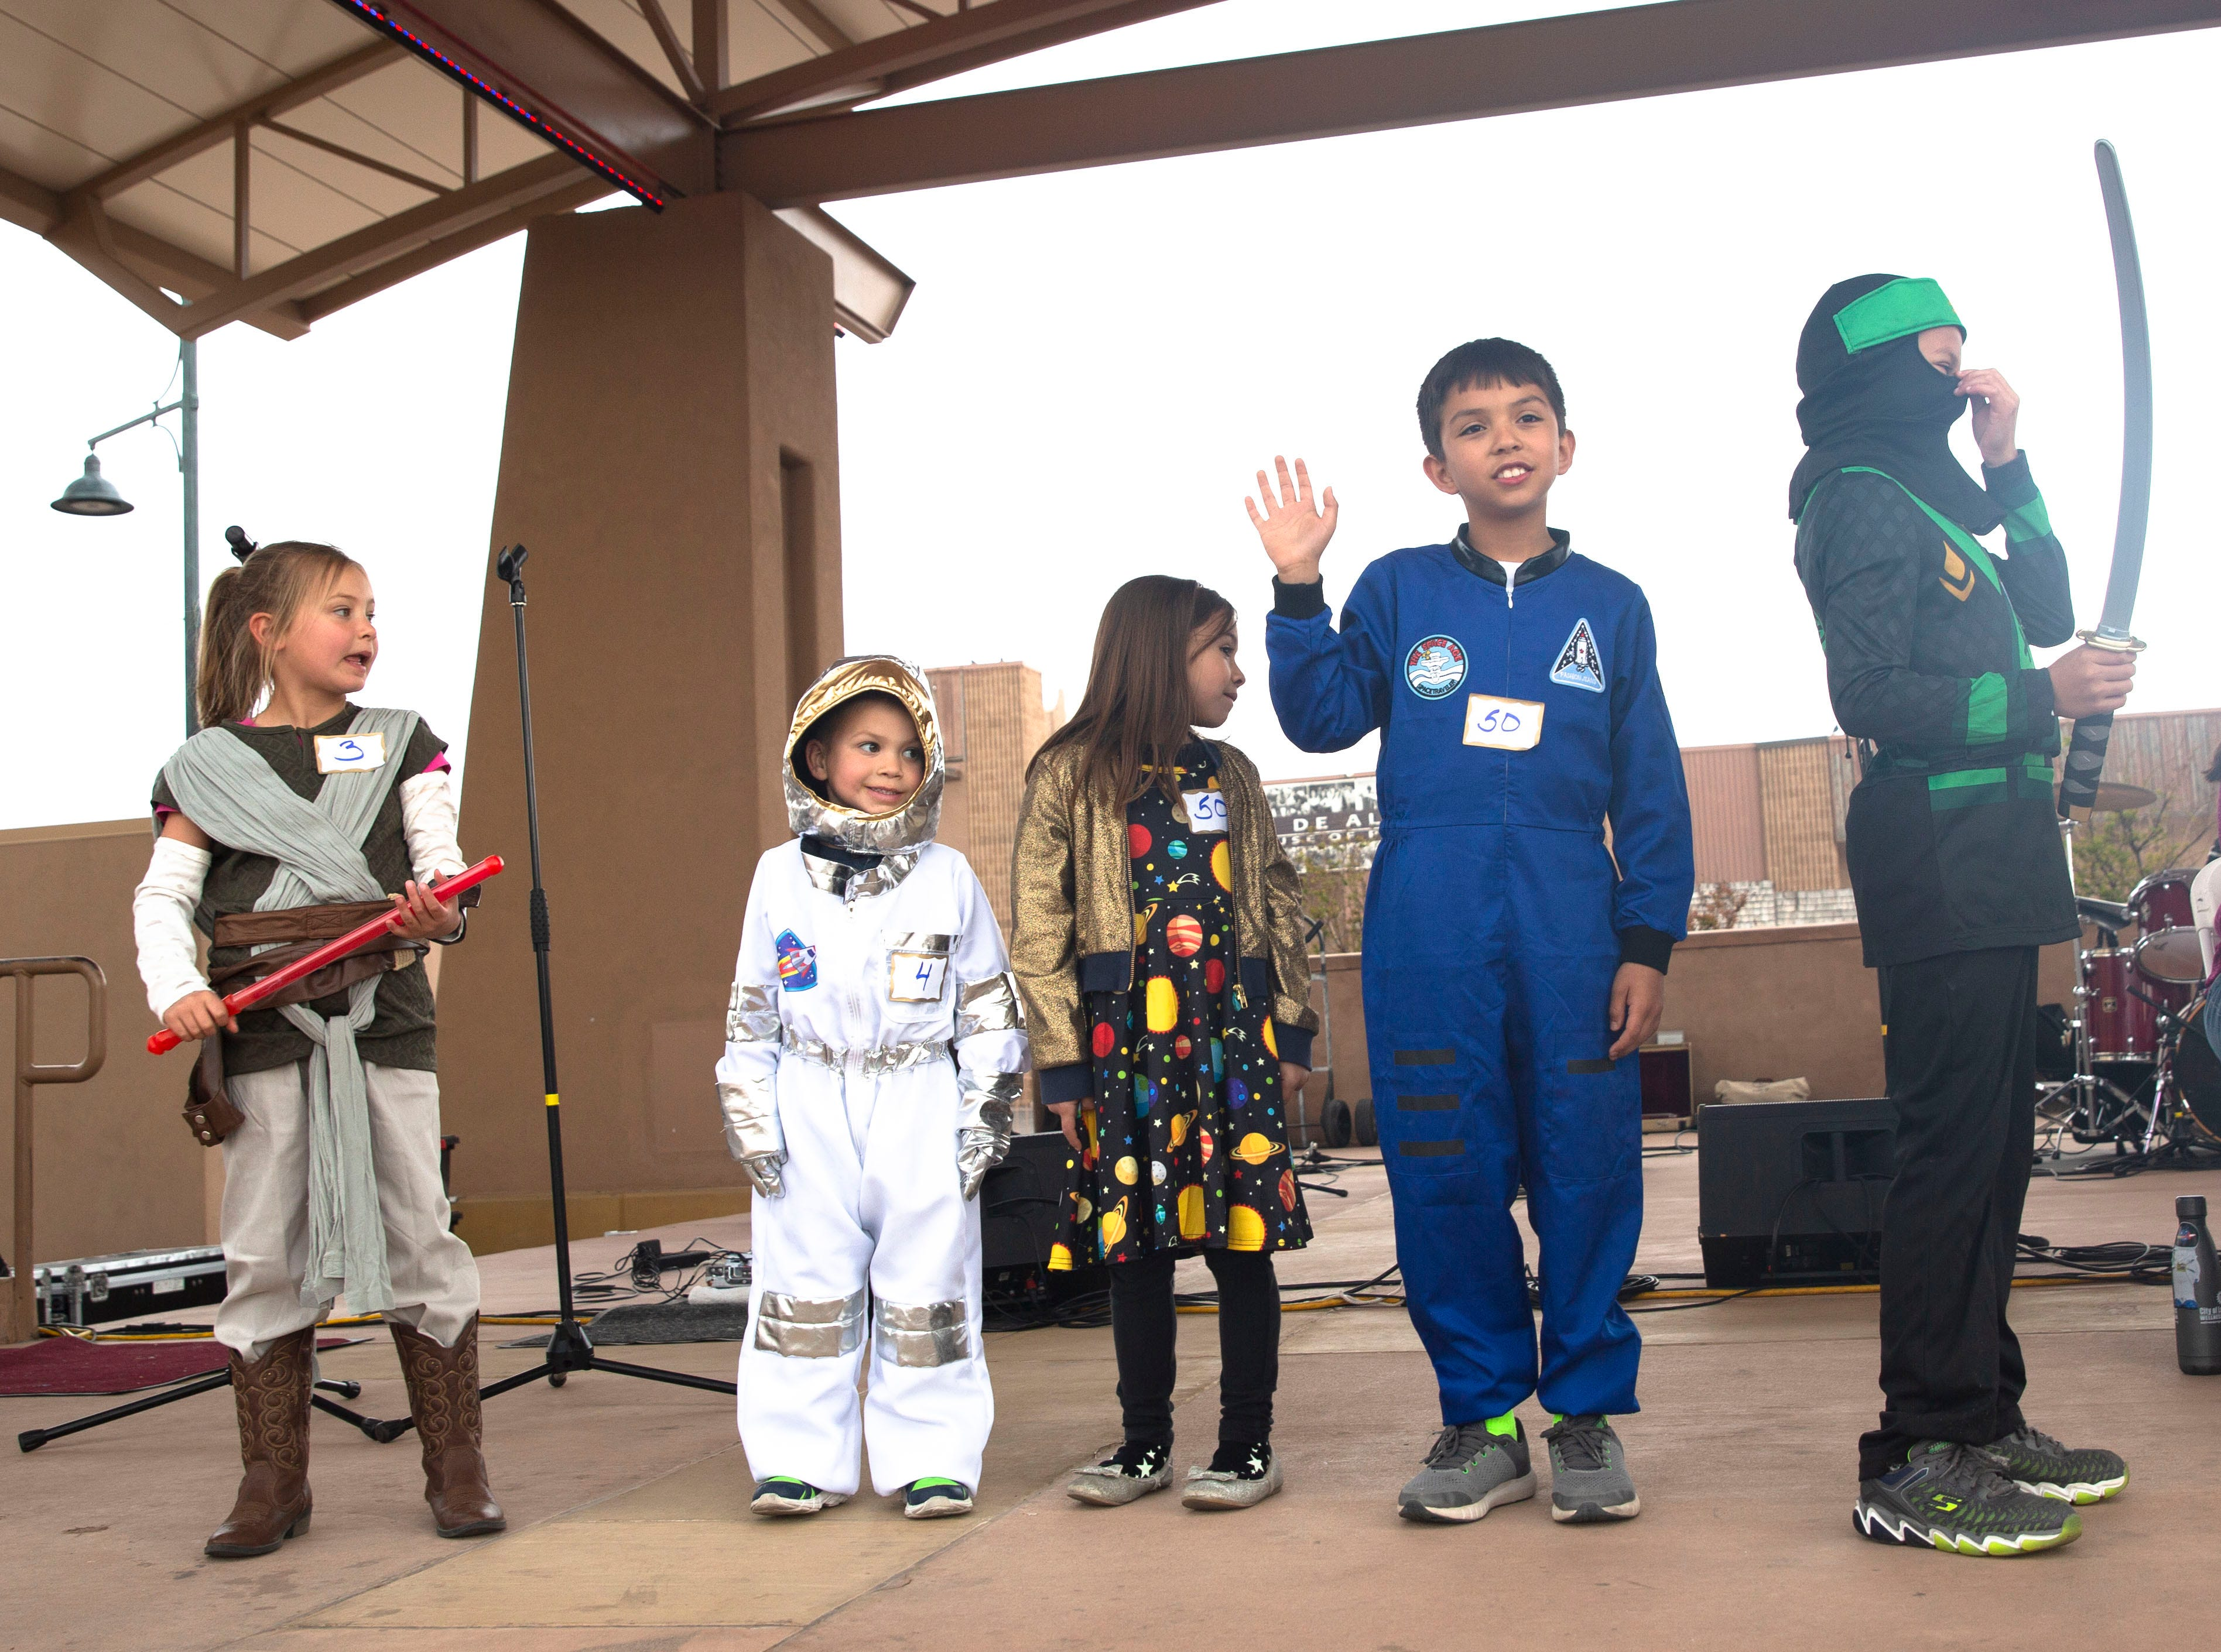 Led by a fierce space ninja, kids line up Friday April 12, 2019, to have their costumes judged during the Space Walk in downtown Las Cruces.